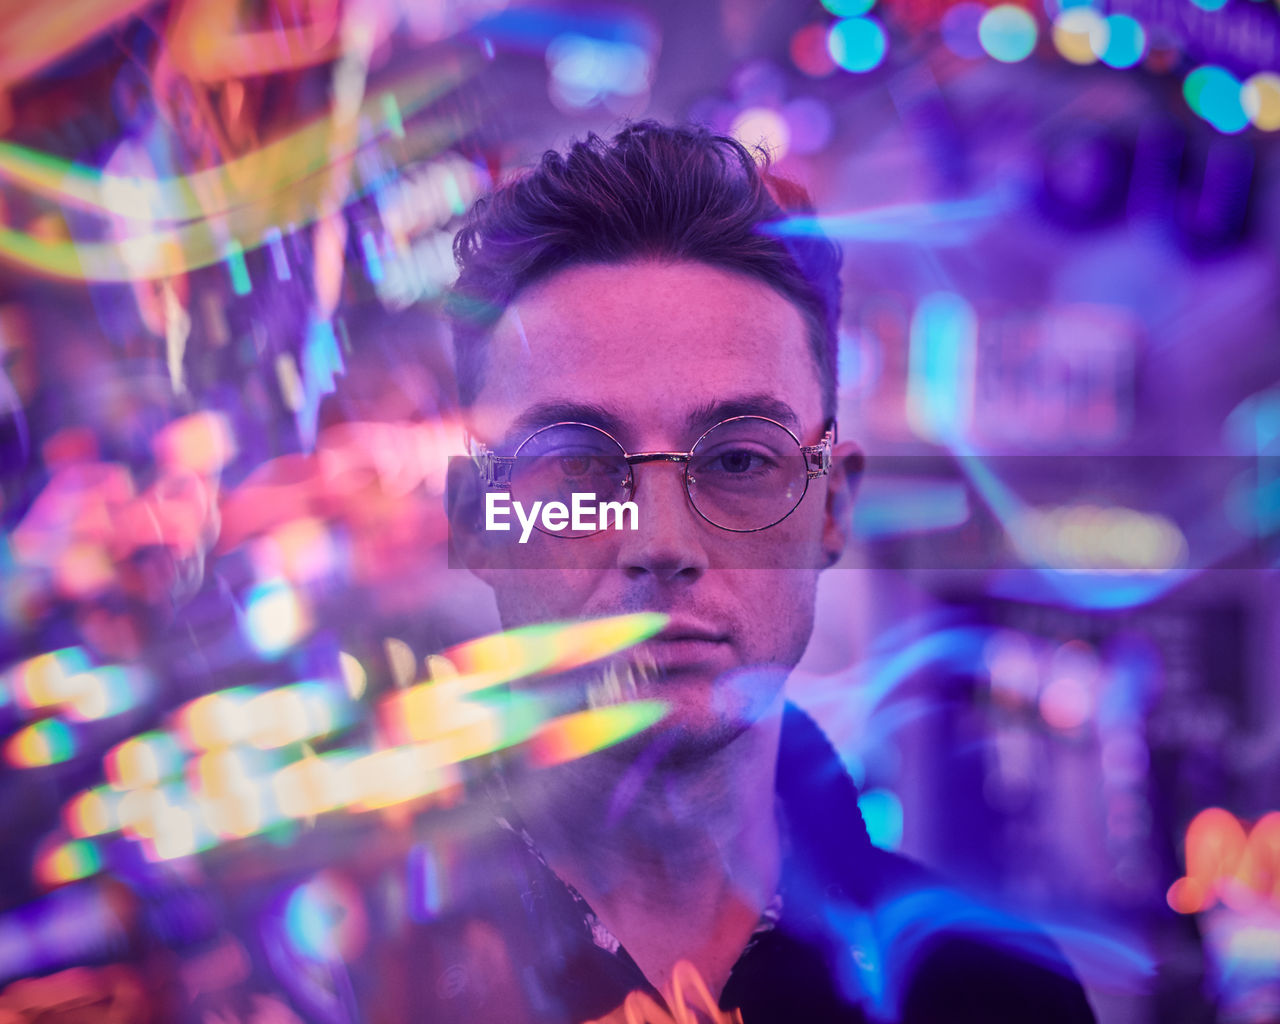 eyeglasses, headshot, portrait, glasses, one person, illuminated, men, adult, real people, front view, leisure activity, indoors, night, young men, mature adult, males, looking, looking at camera, mature men, nightlife